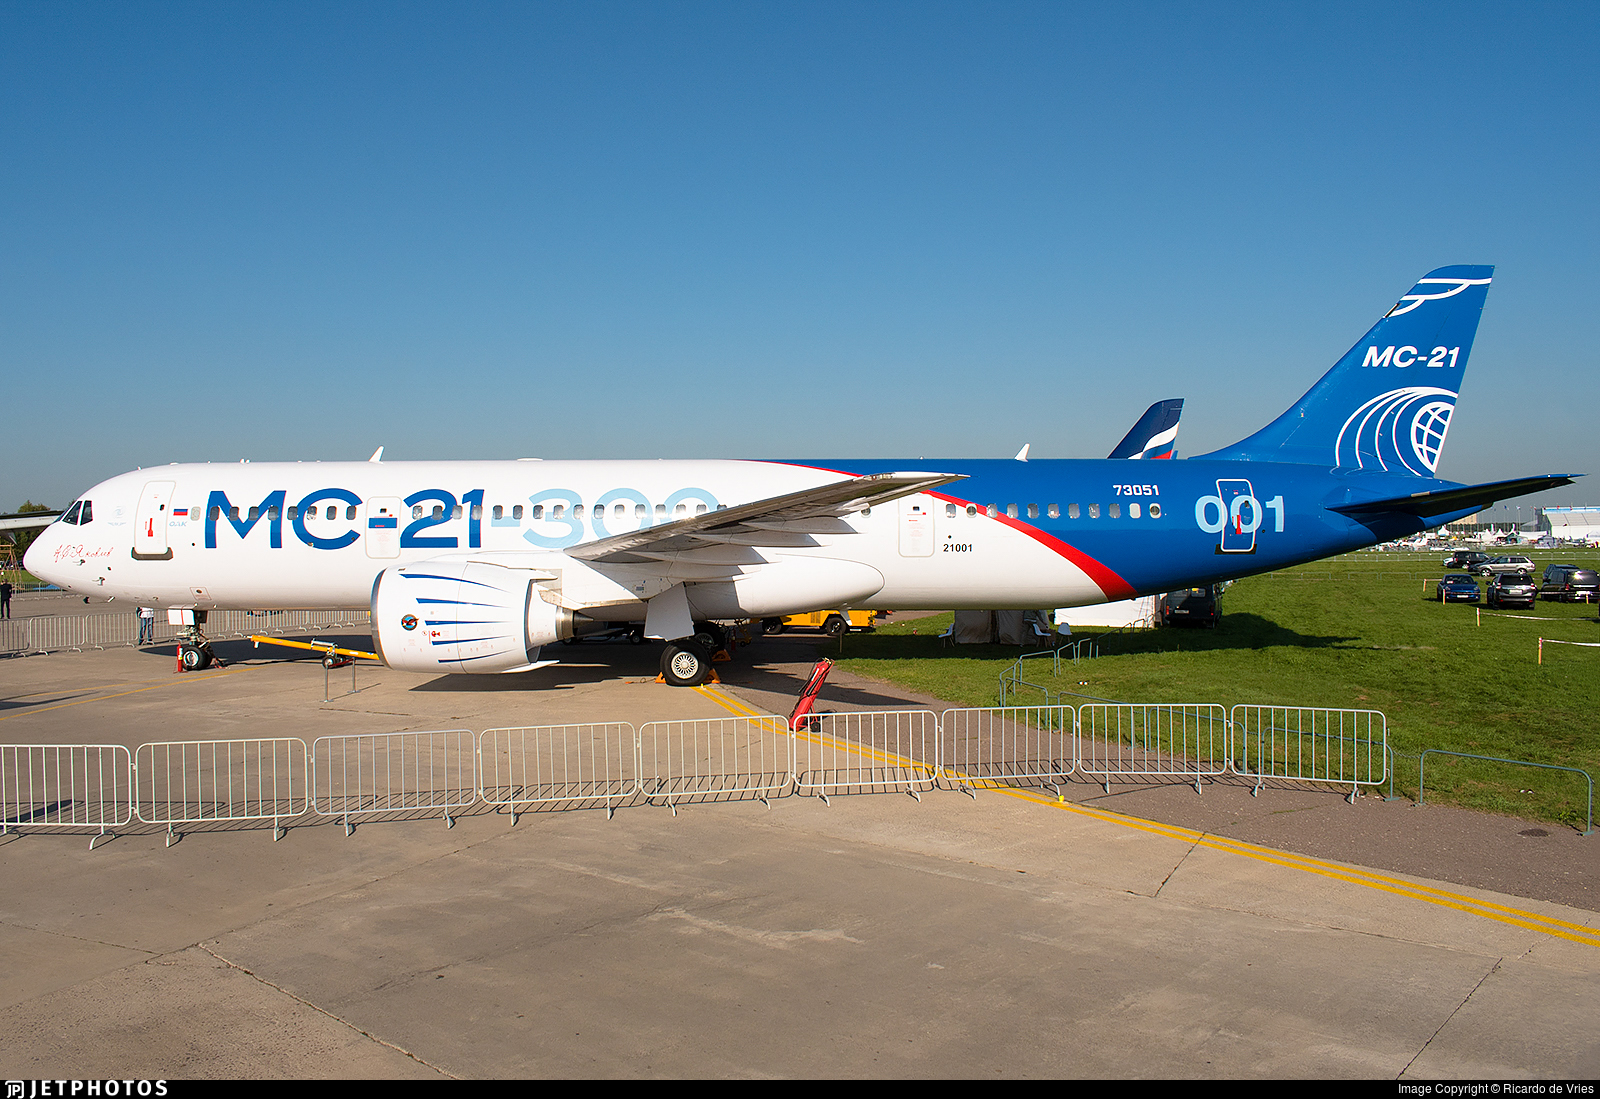 73051 - Irkut MC-21-300 - Irkut Corporation